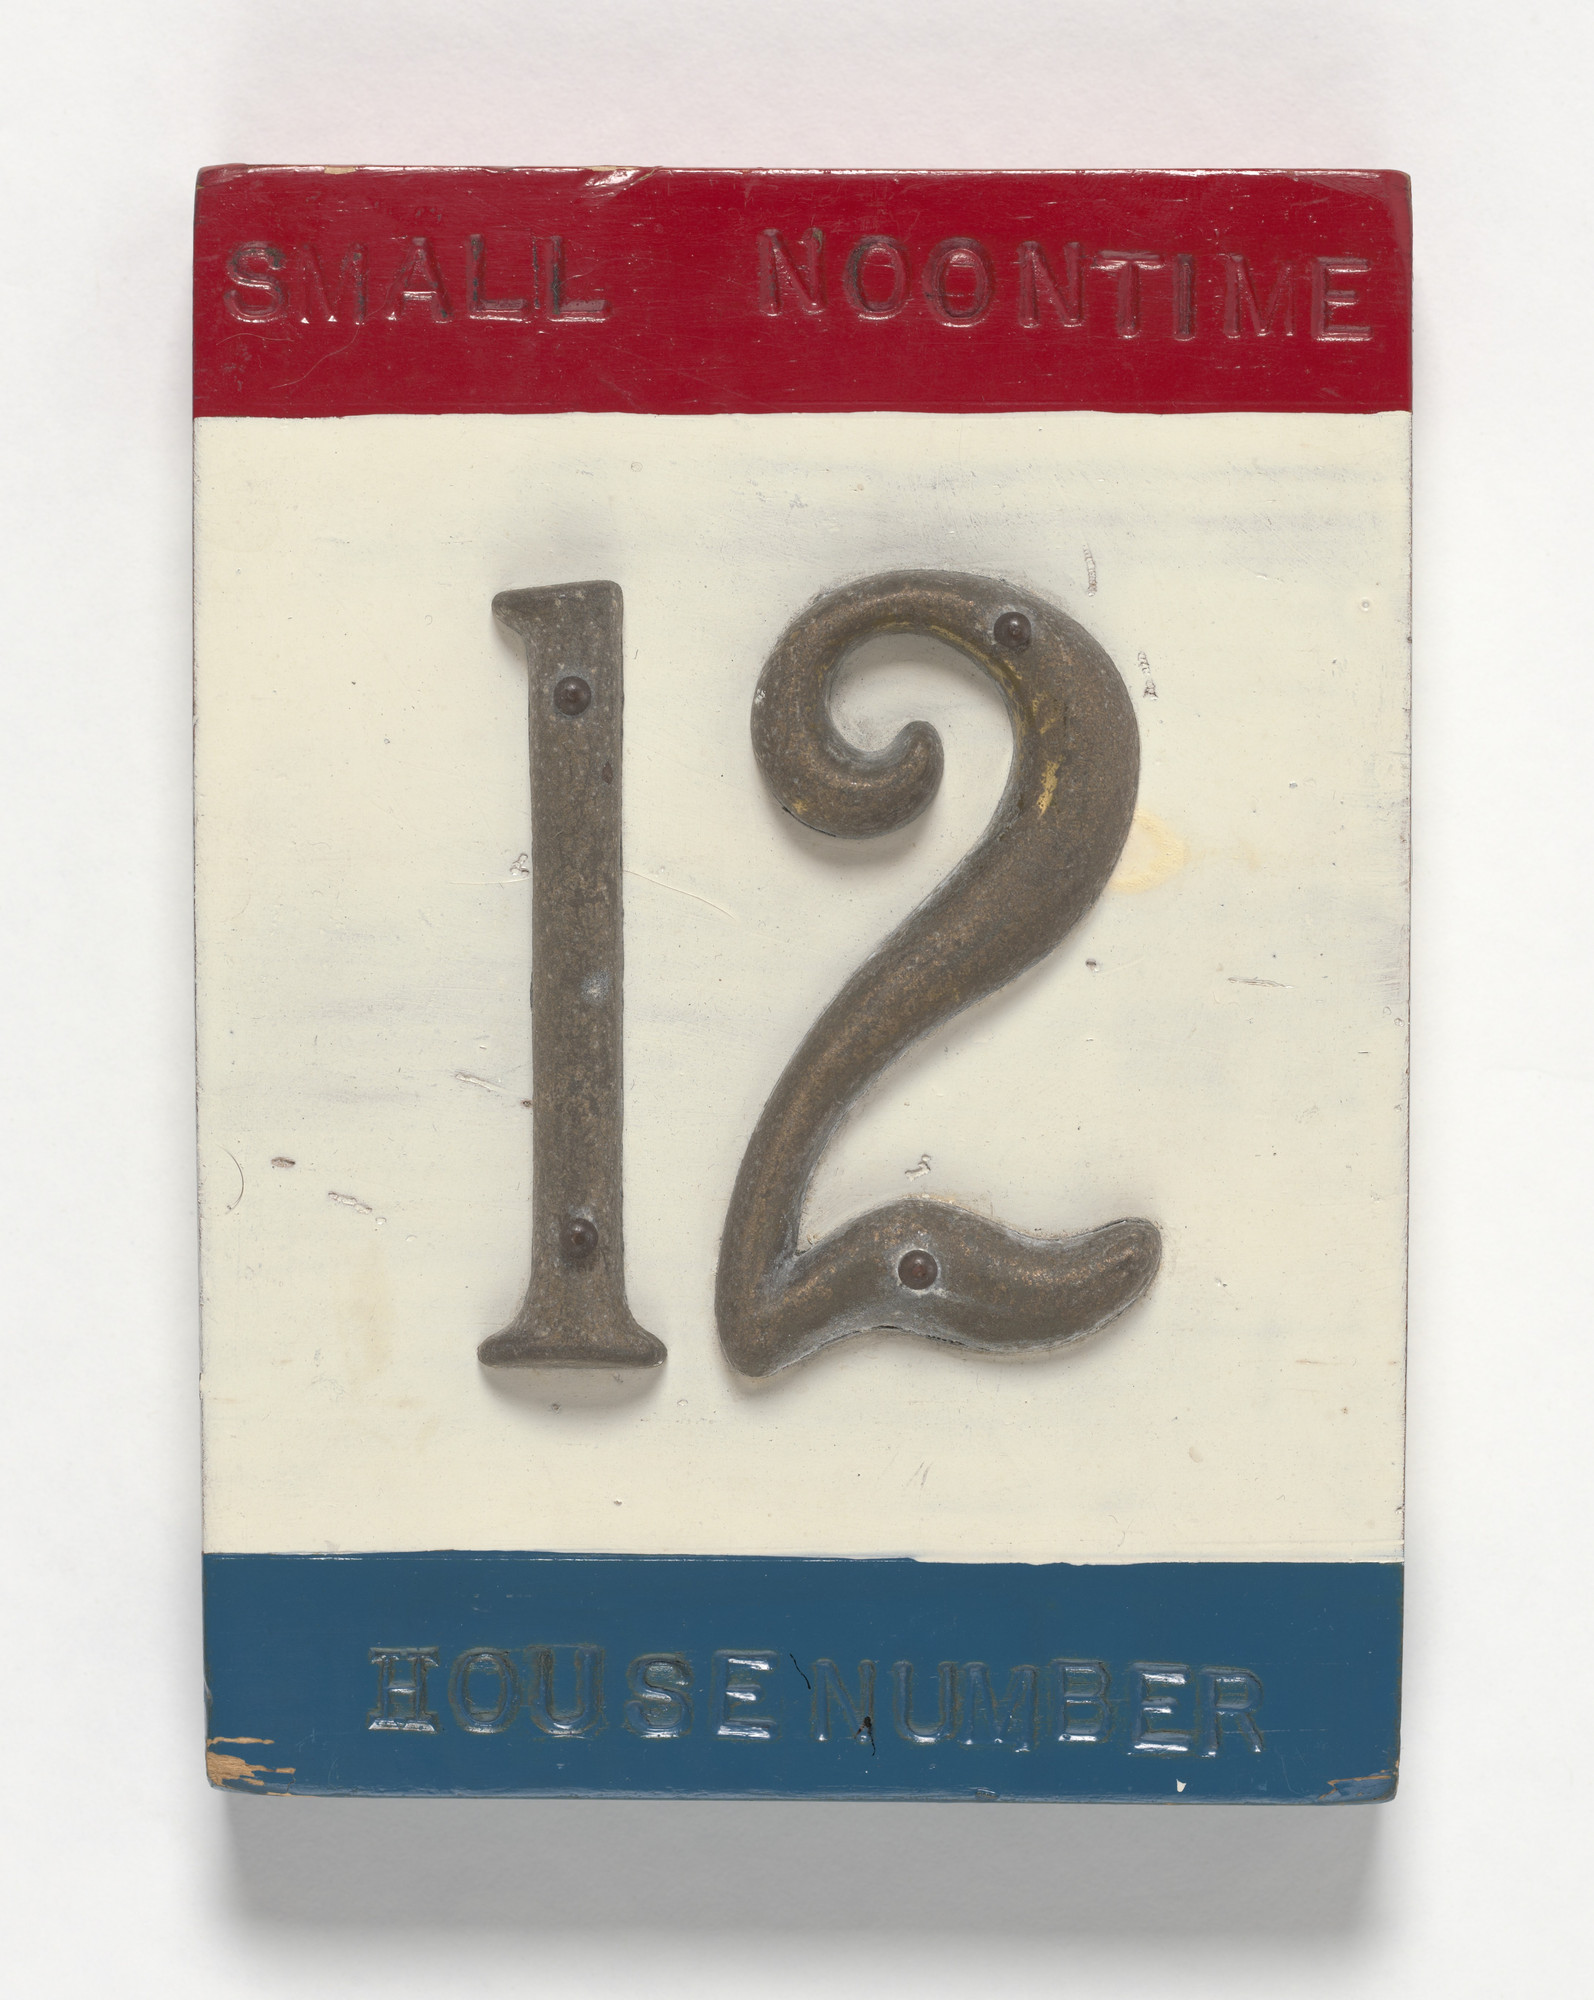 George Brecht. Exhibit Seven (Clock) or Small Noontime House Number Clock (For Claes). 1961, realized c. 1961